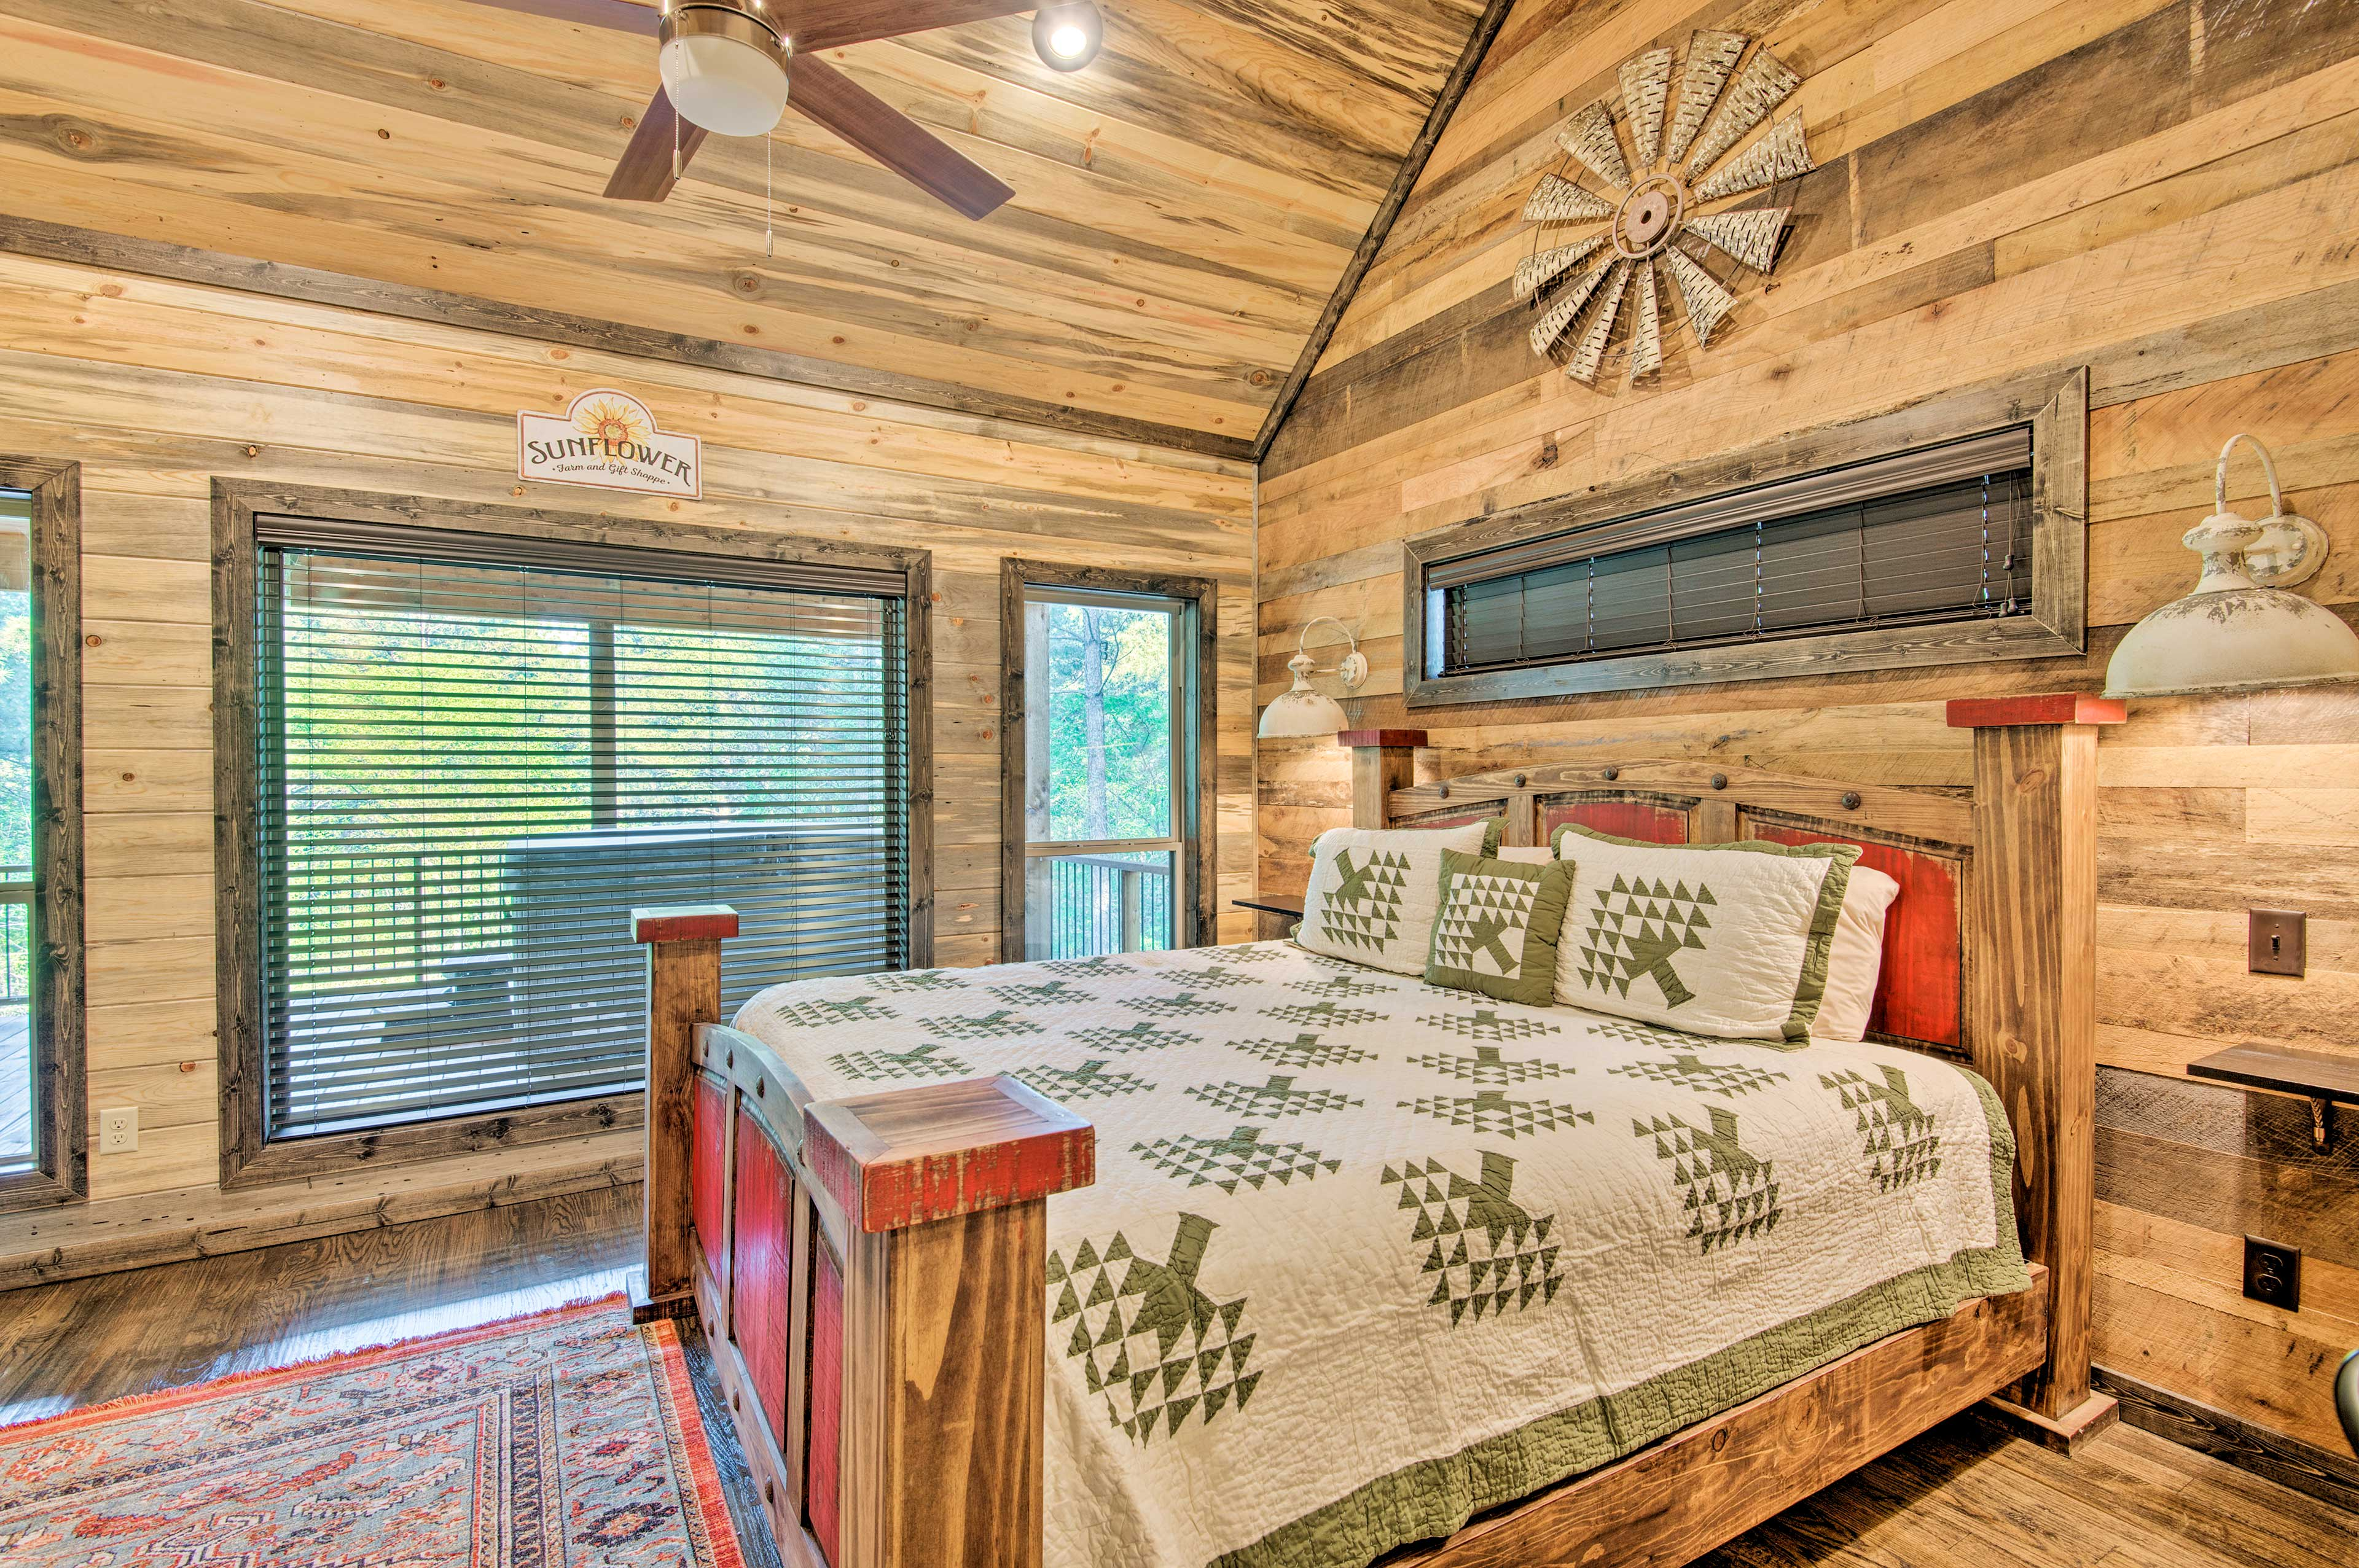 Heads of the household - be sure to claim this immaculate master suite!